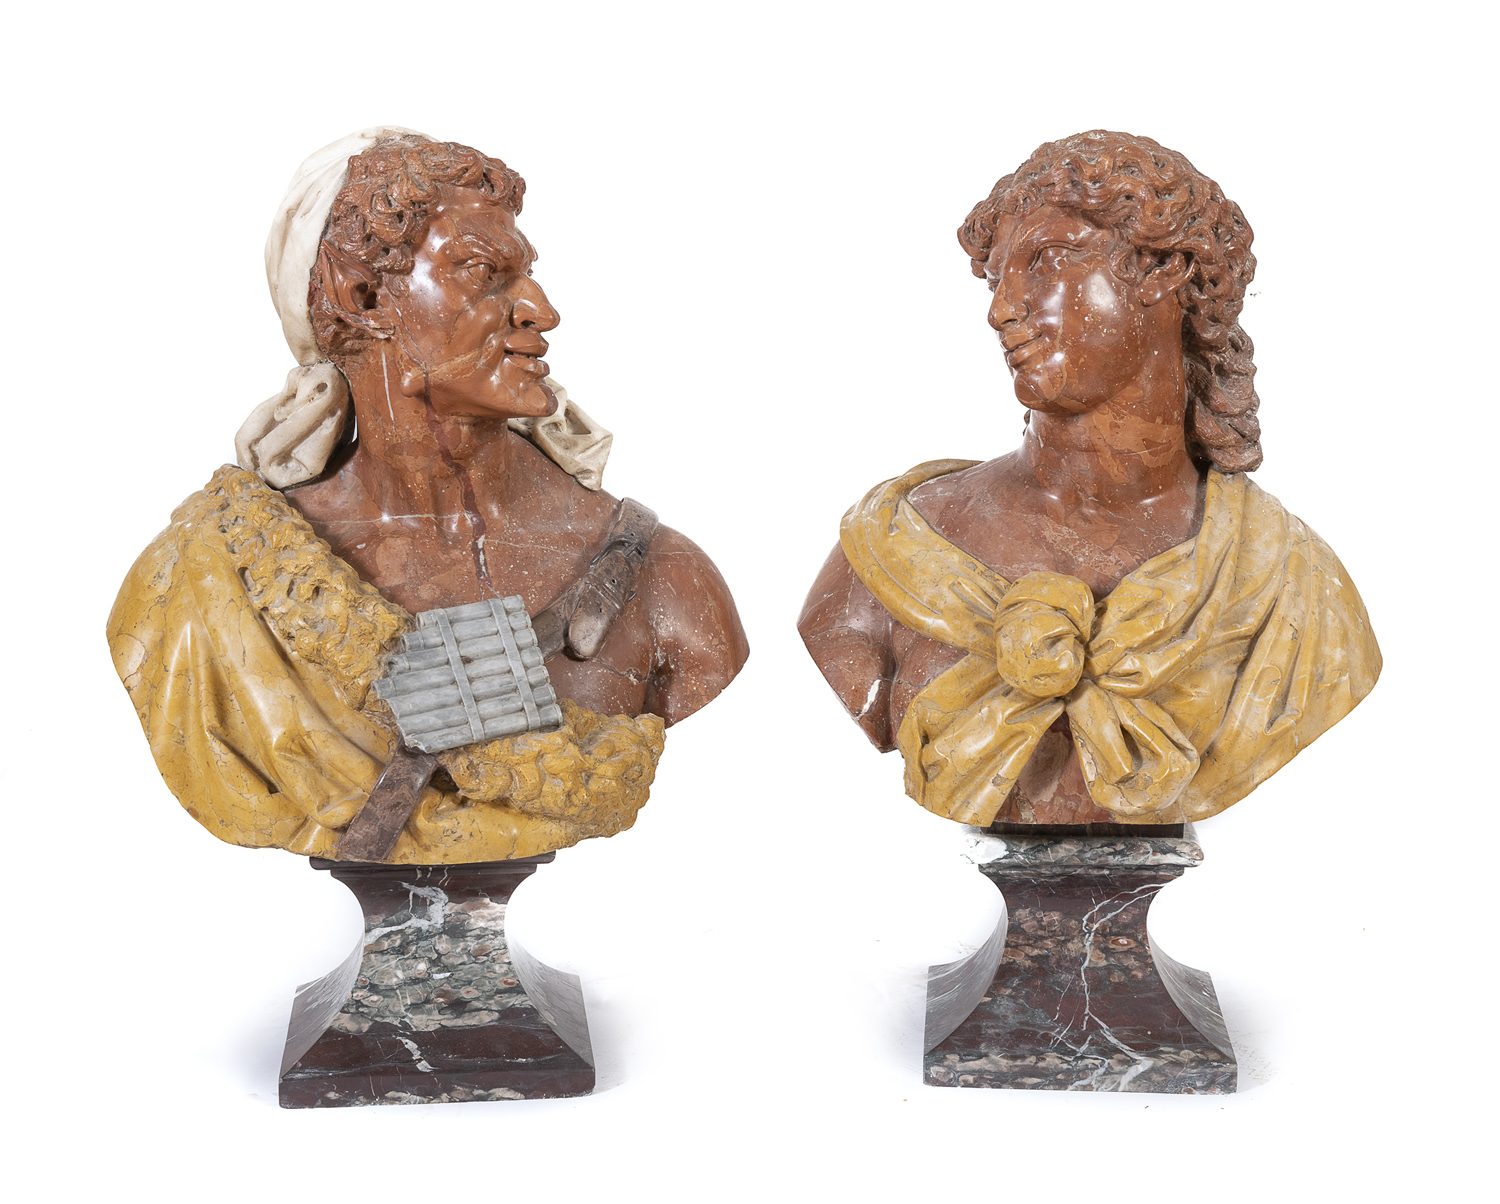 BEAUTIFUL PAIR OF MARBLE BUSTS 18th CENTURY